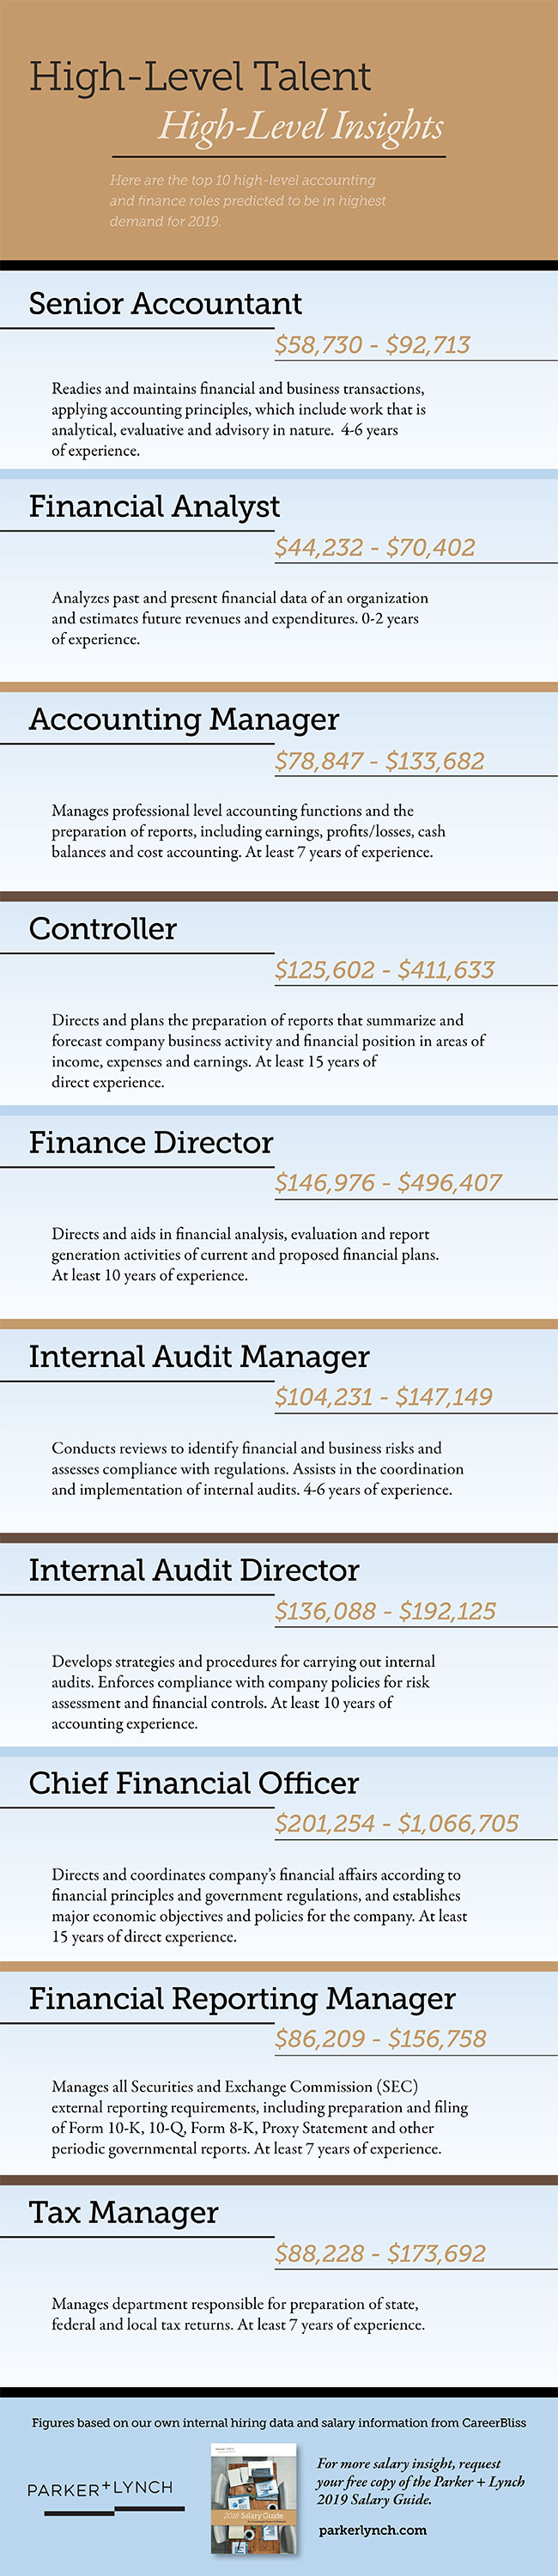 Infographic: What Are The Top Finance Jobs For 2019?